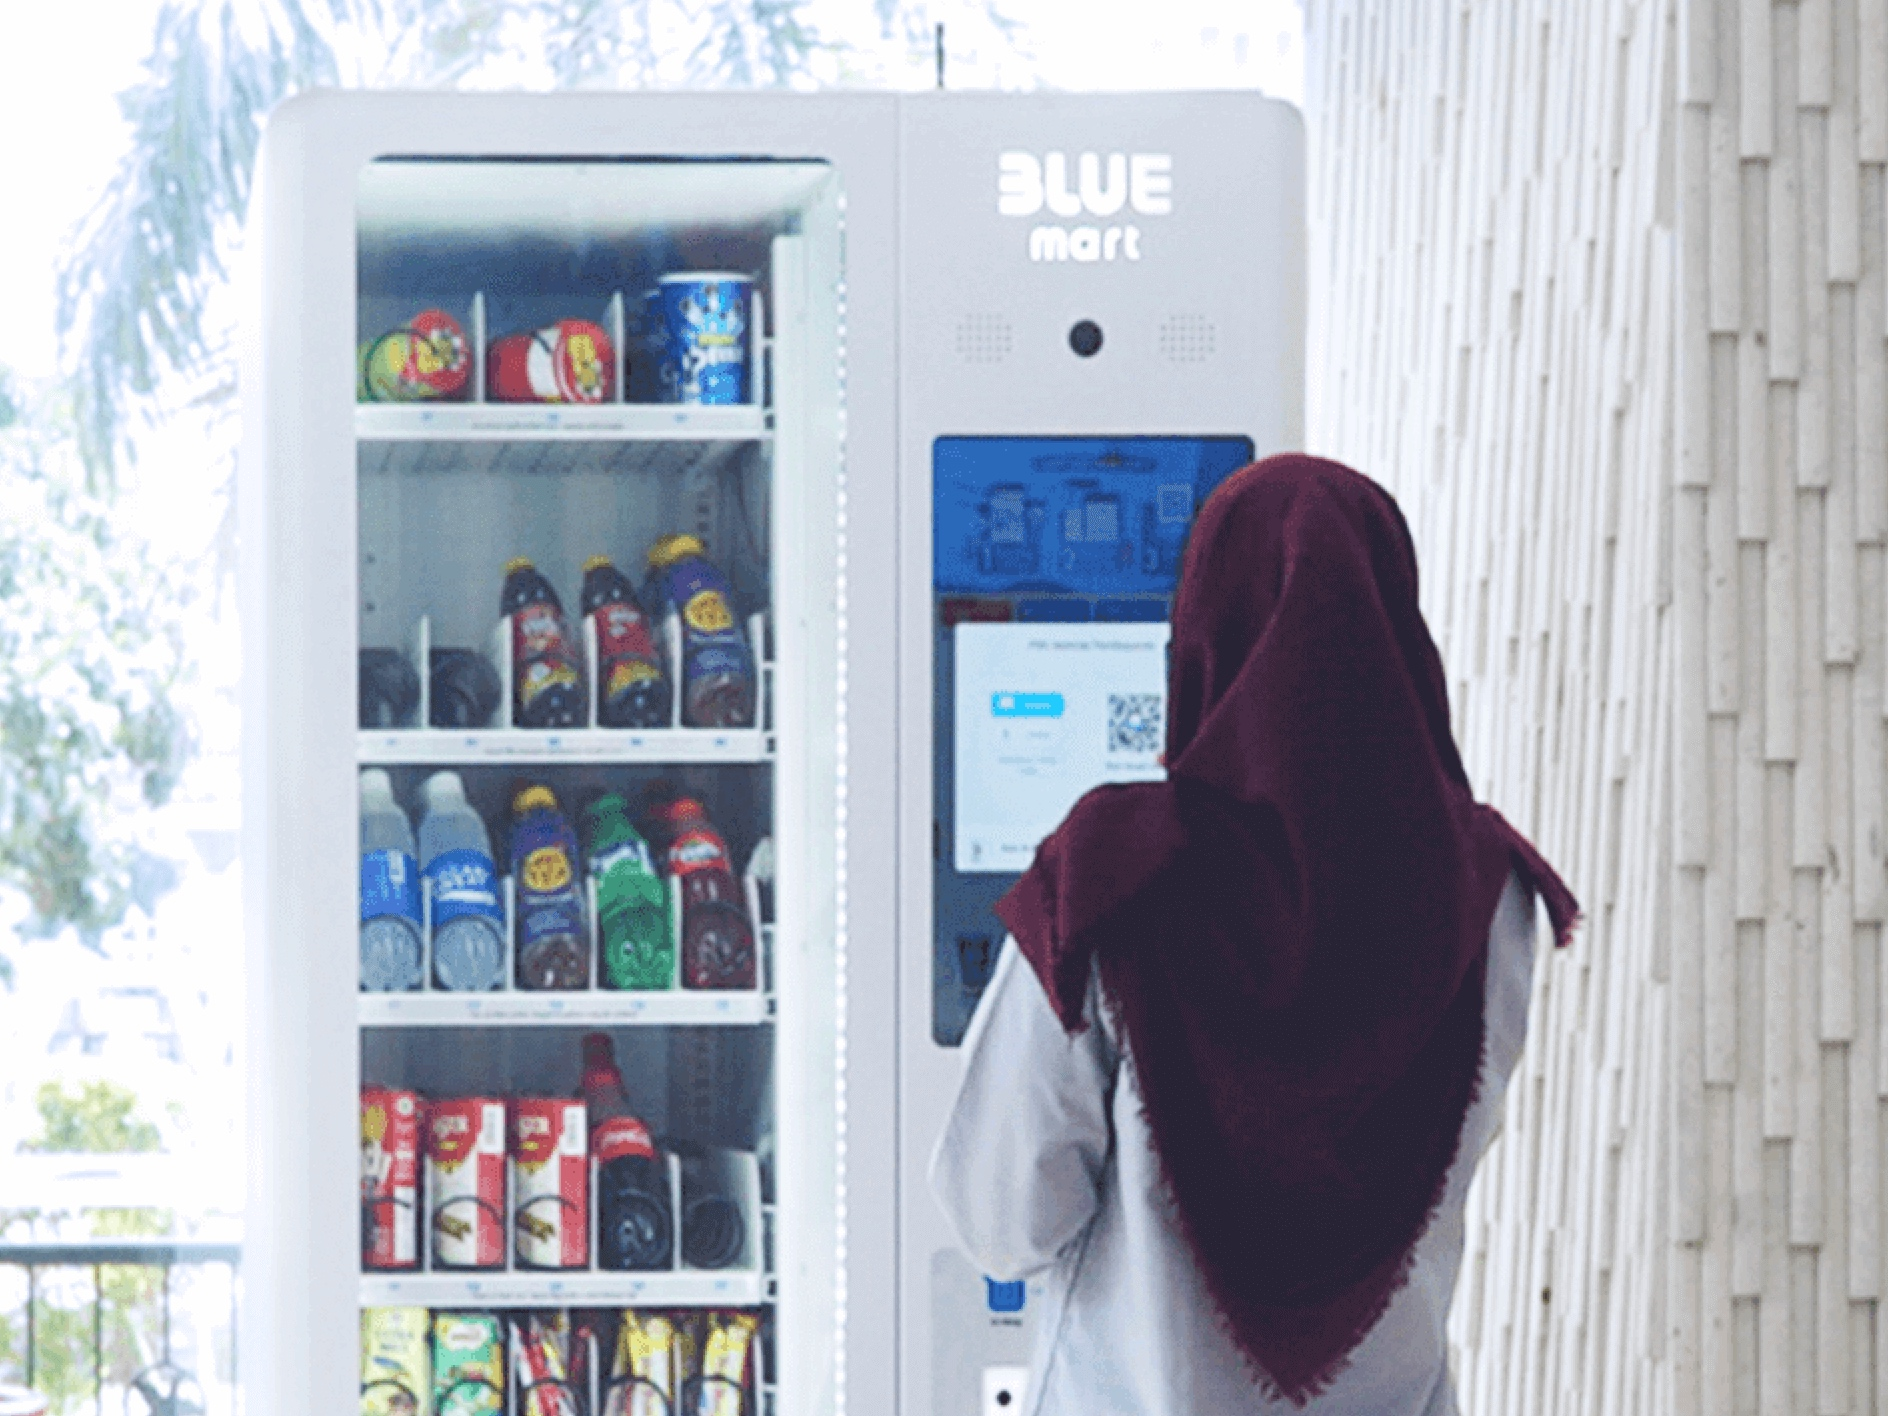 Indonesian Woman Scans the QR Code of BLUEmart vending machine to proceed with the payment. PHOTO: Credit to Blue Mobile